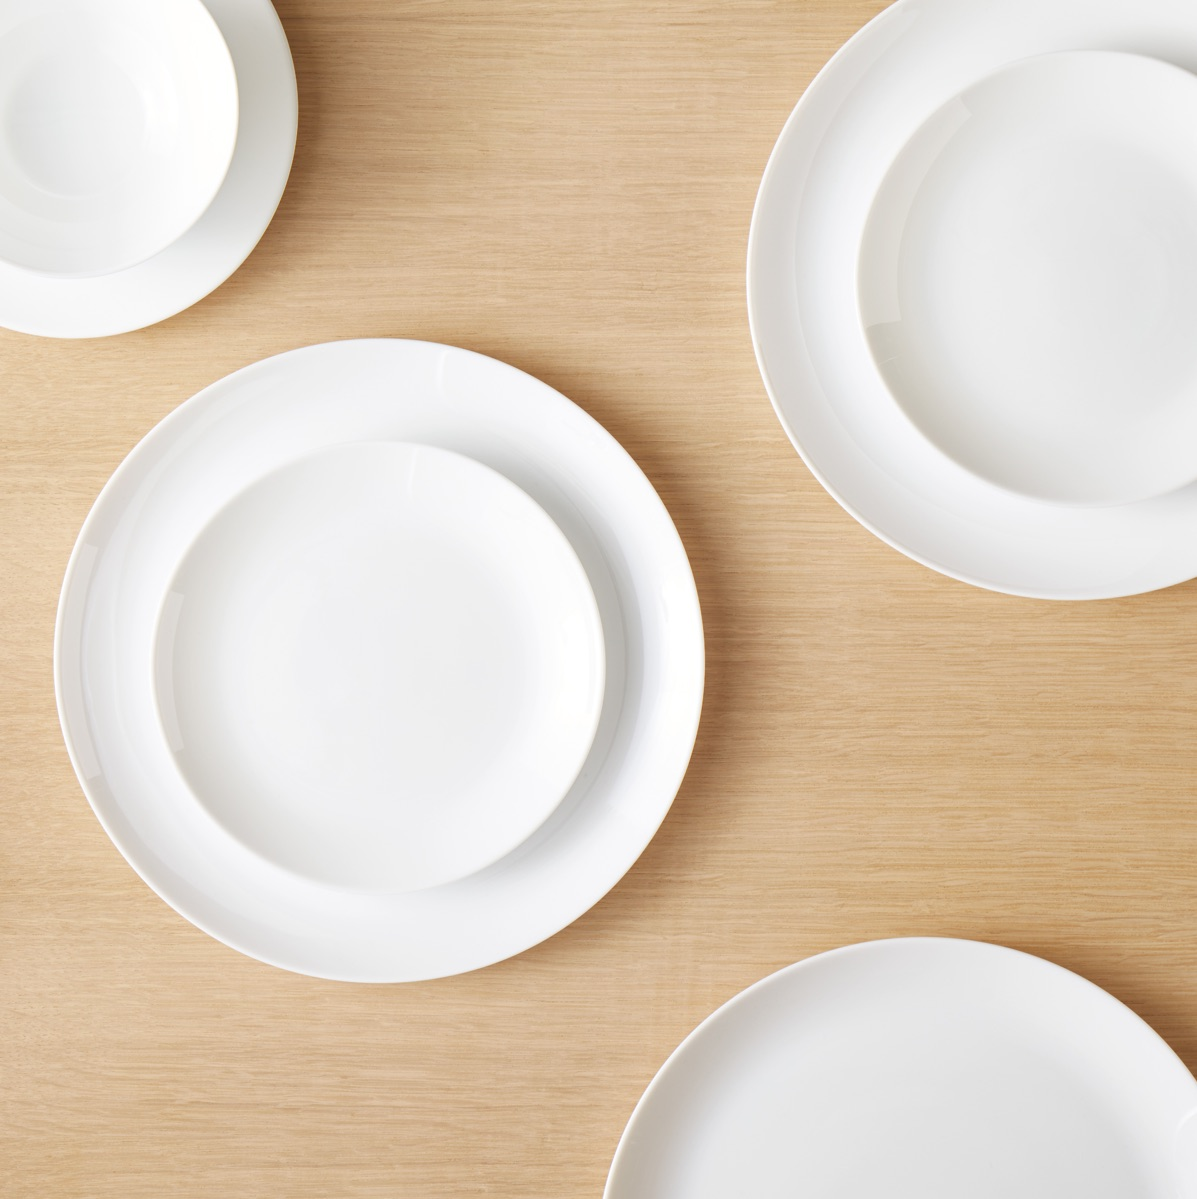 White, round dinner plates with white bowls stacked on top